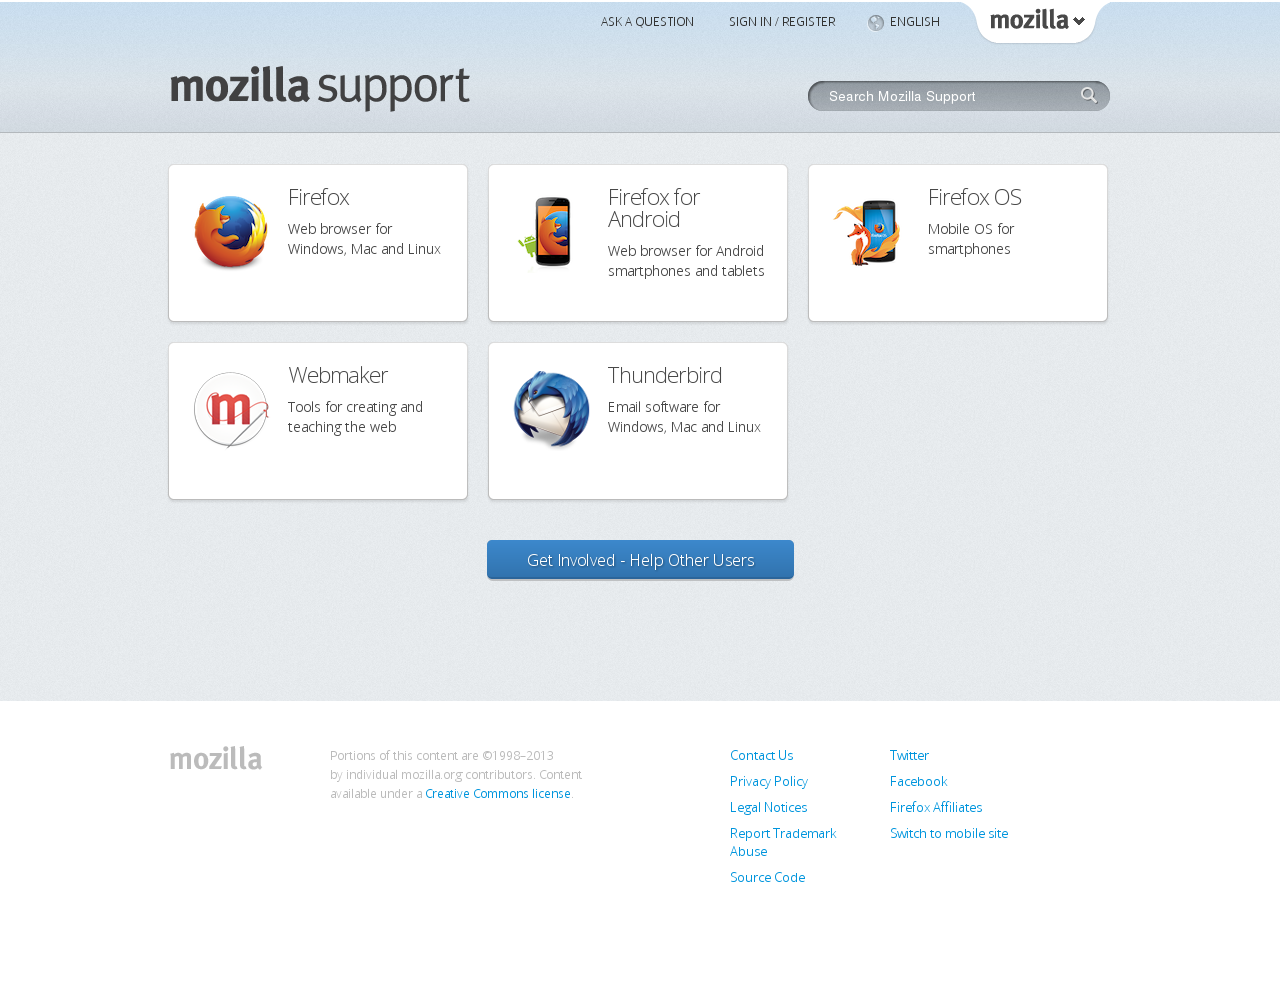 Mozilla Support Homepage